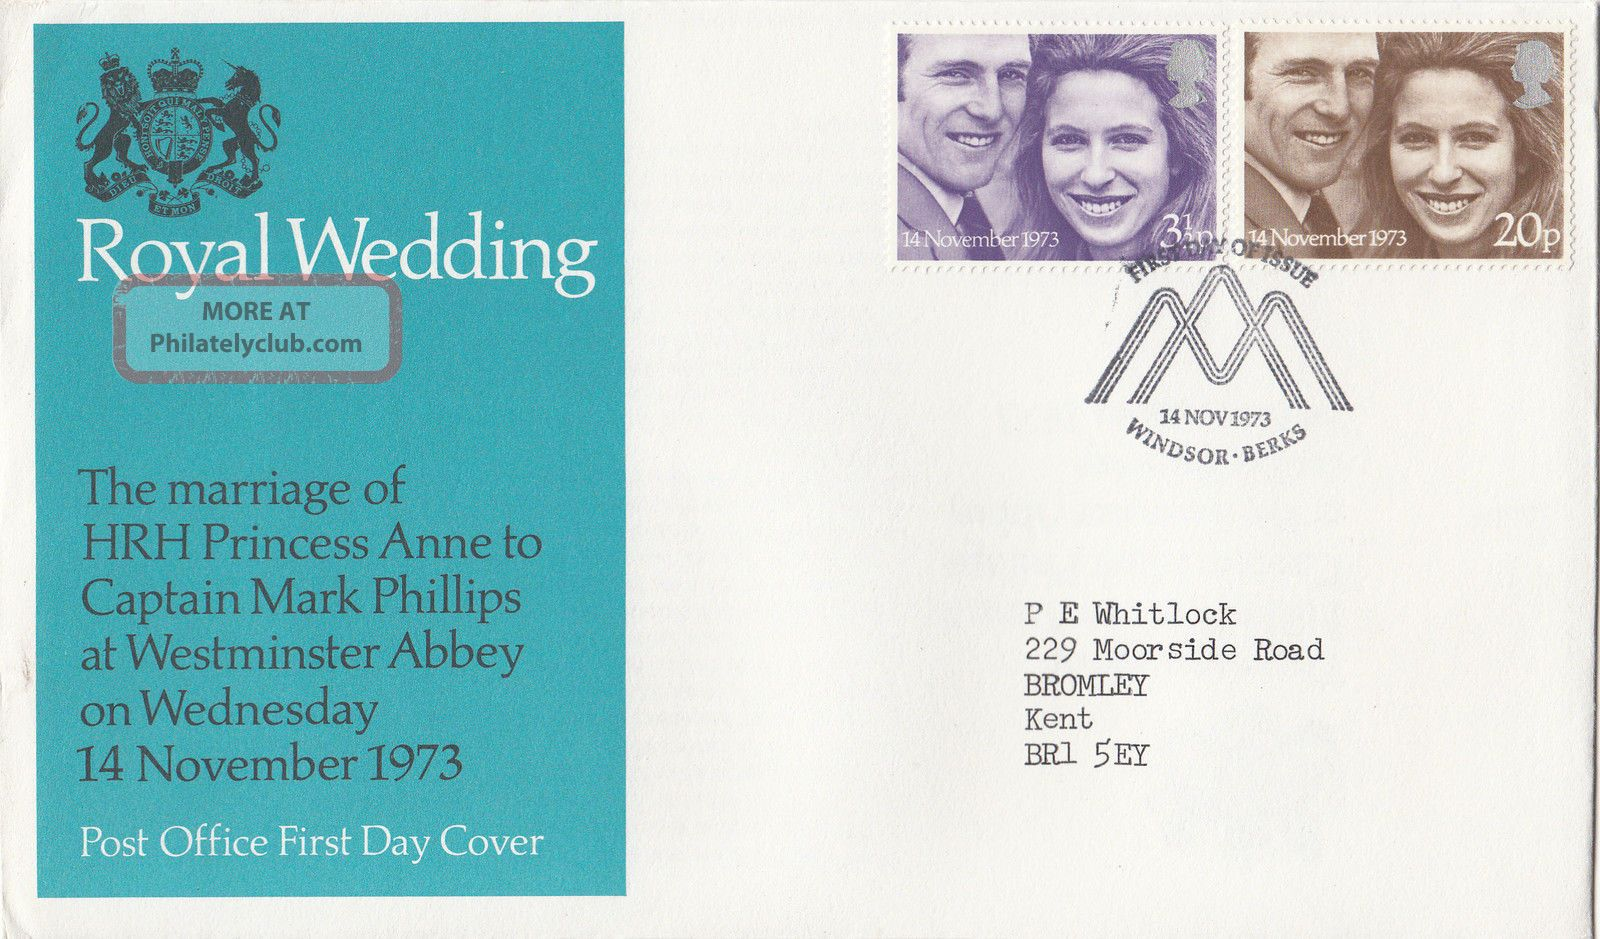 (29888) Clearance Gb Fdc Princess Anne Wedding - Windsor 14 November 1973 1971-Now photo